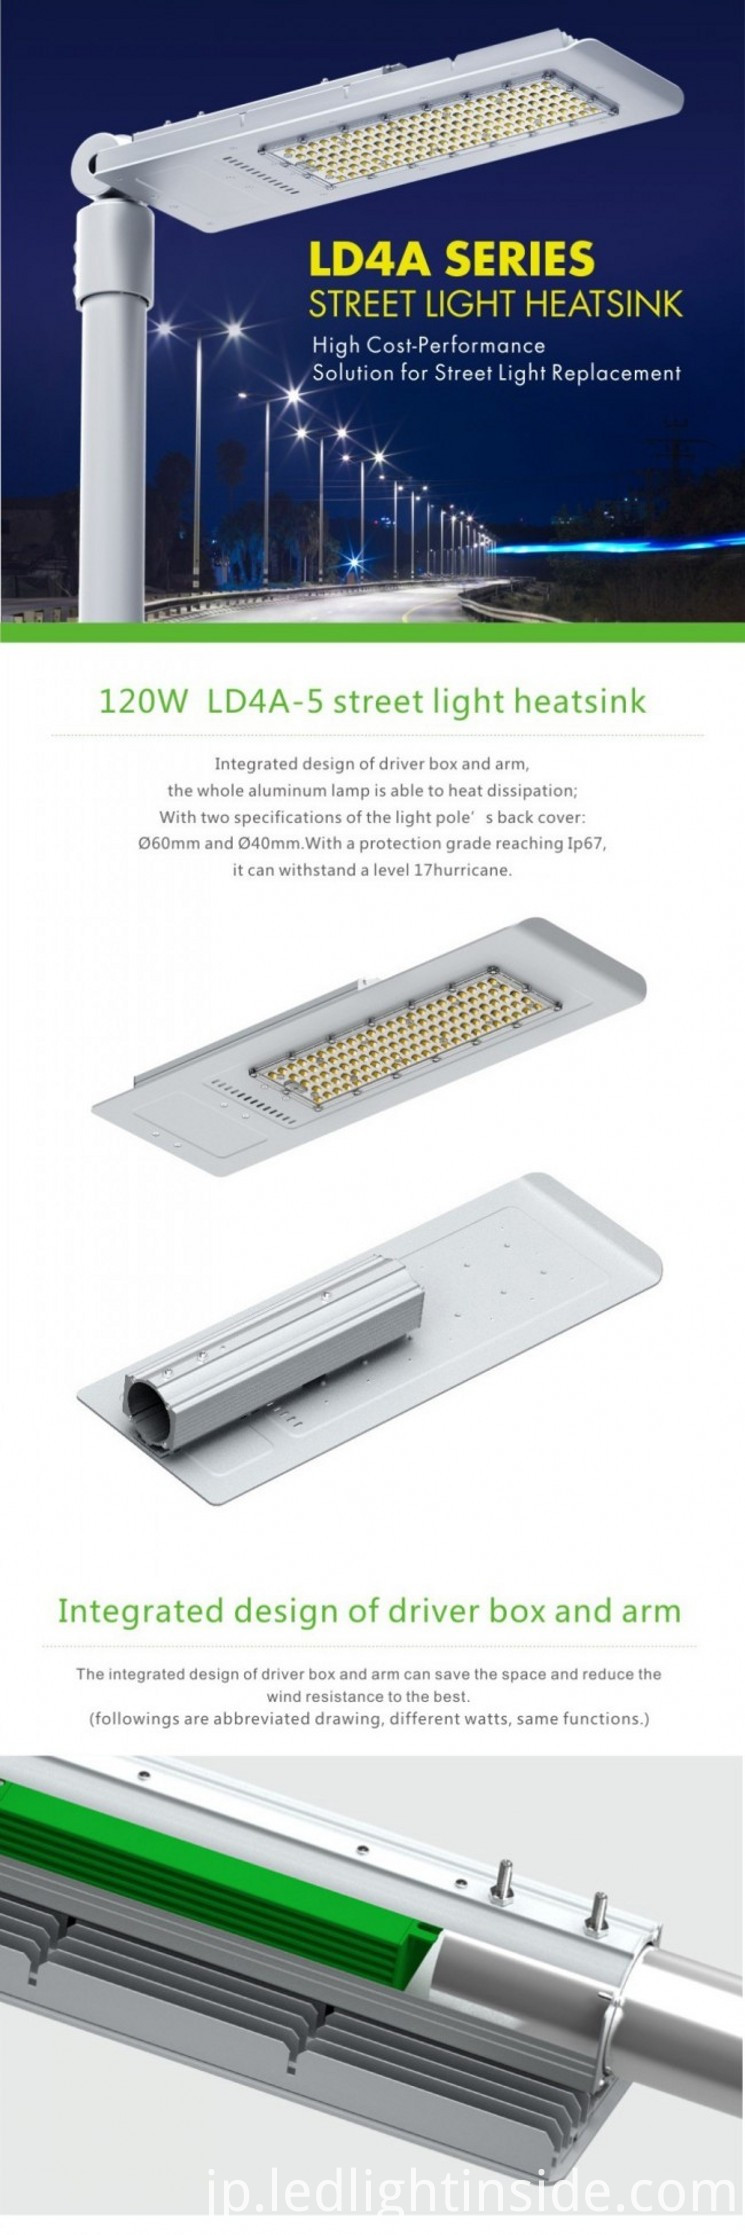 10KV Surge Protection 120W LED Street Light